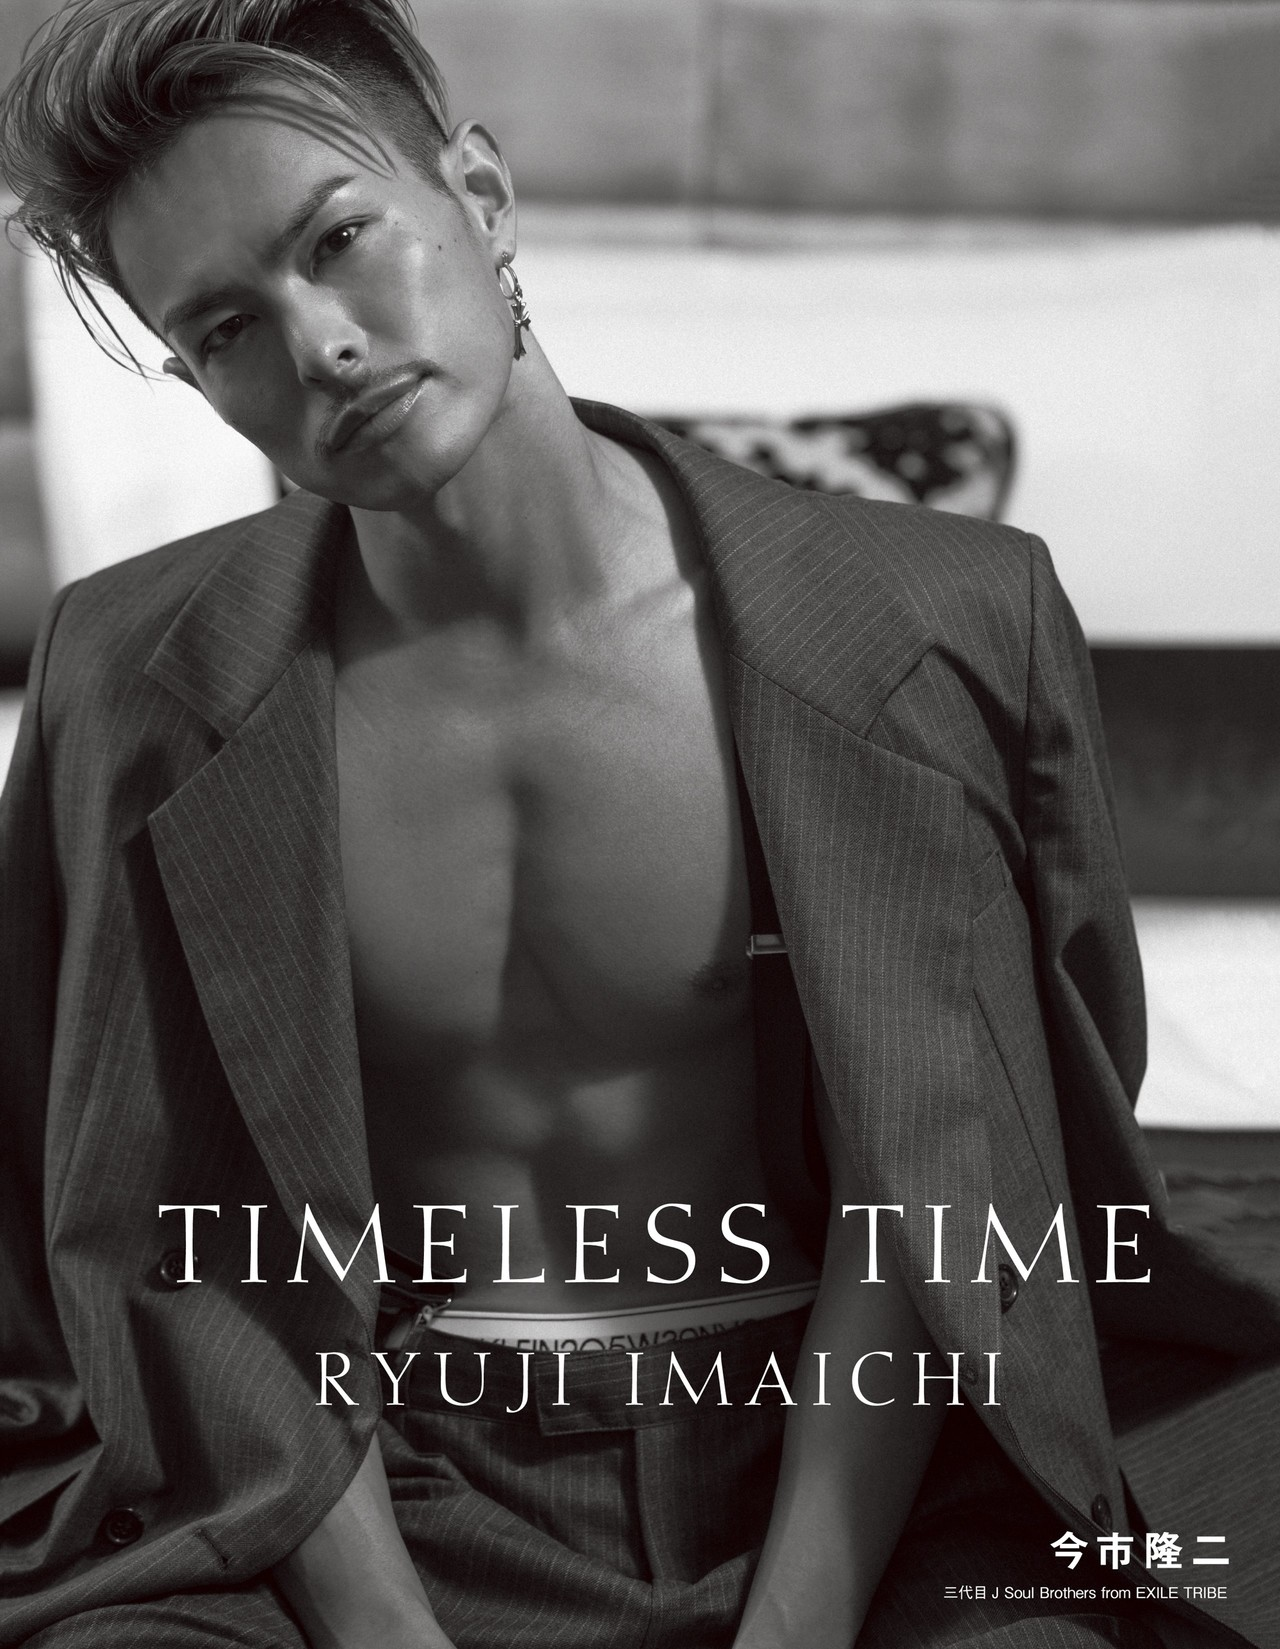 『TIMELESS TIME』(タイムレス・タイム)